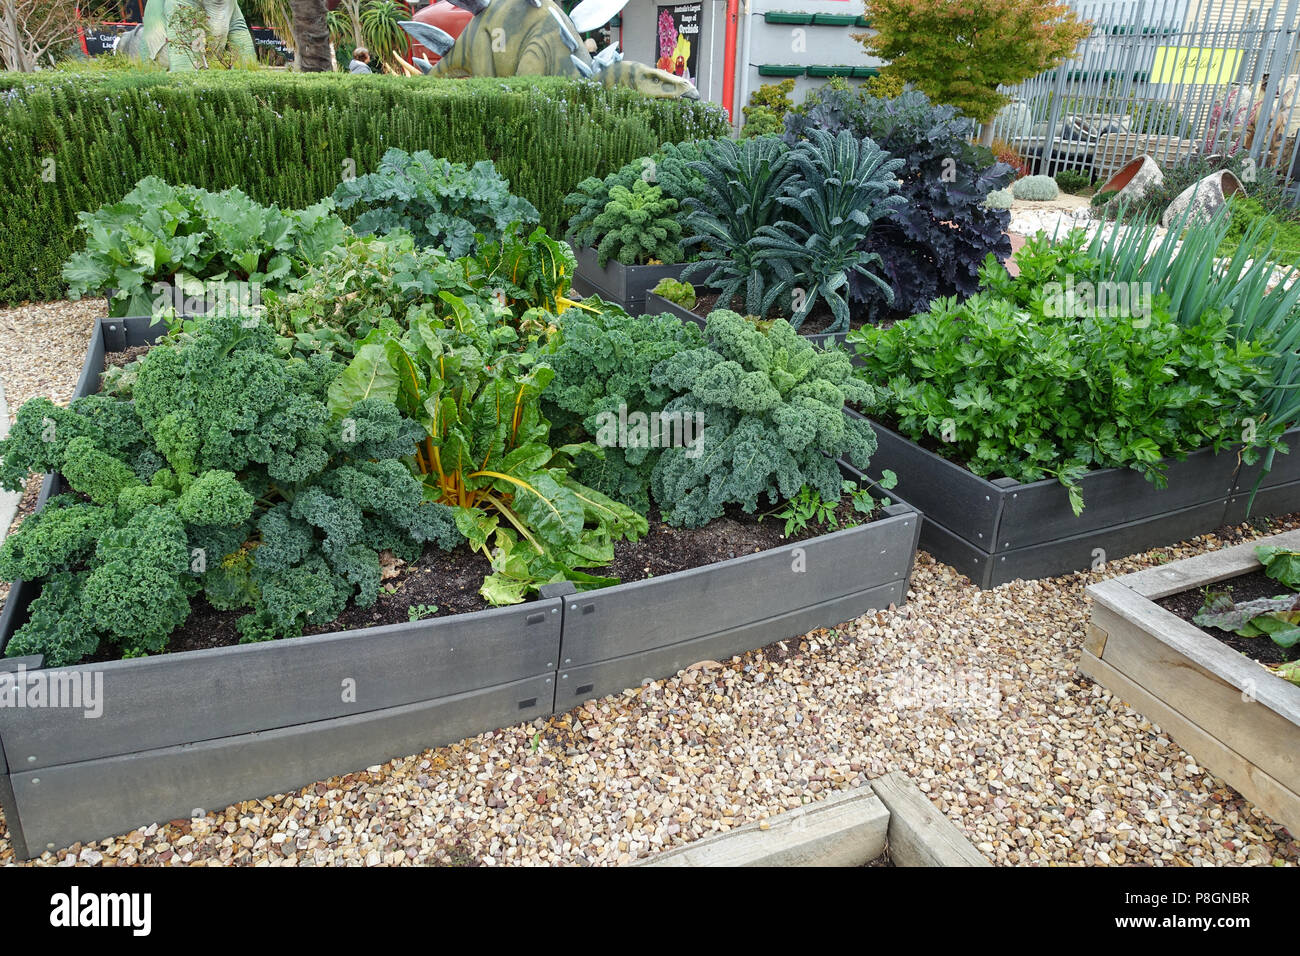 Vegetable patch with mixed vegetables growing ready to harvest Stock Photo